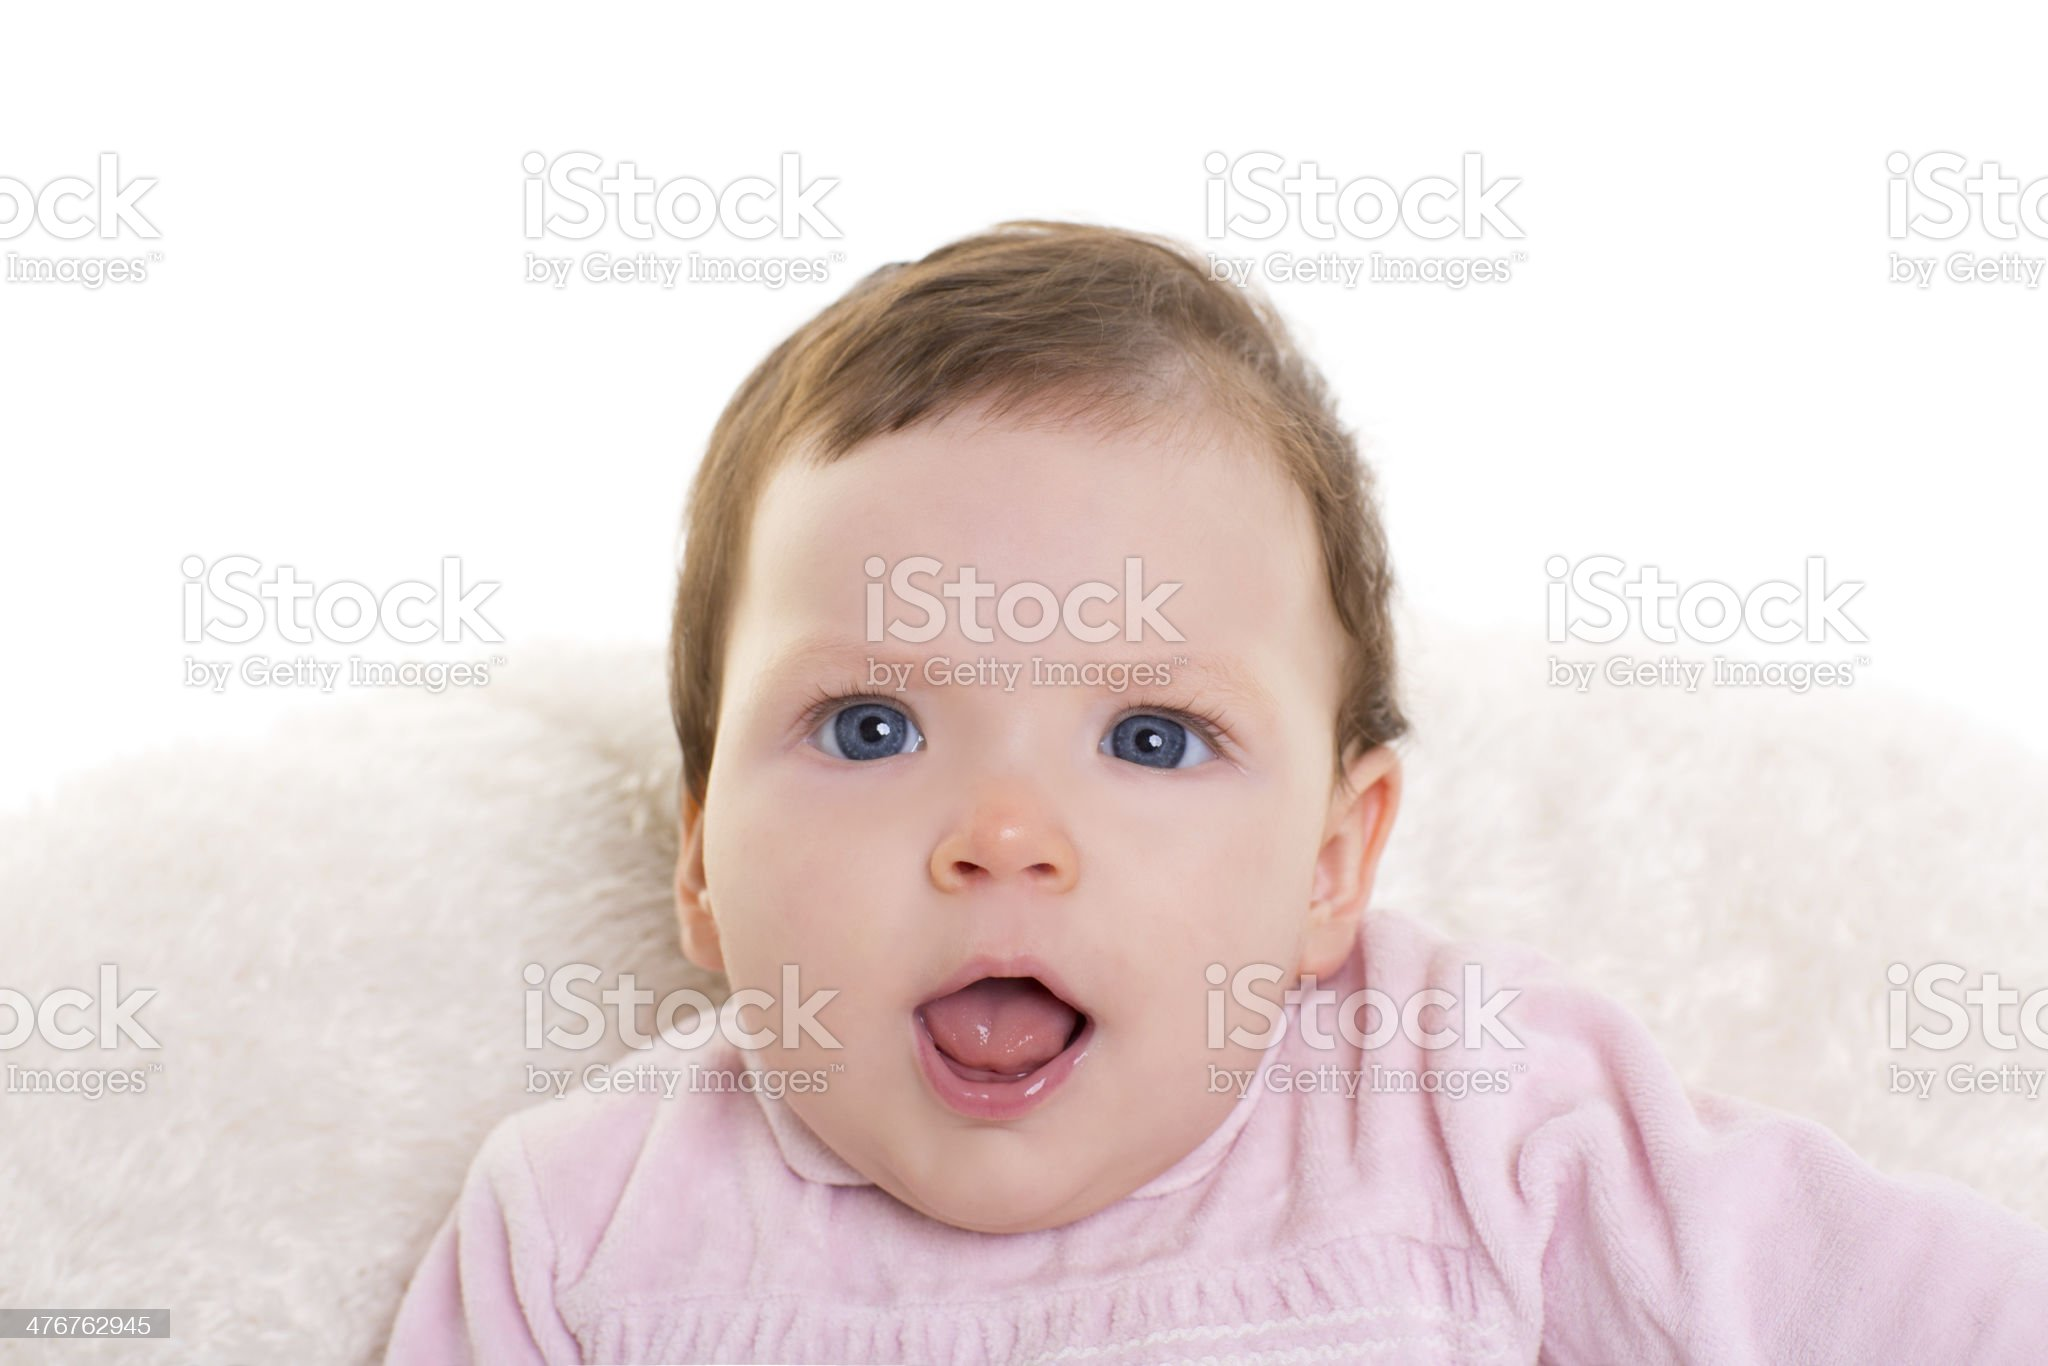 baby girl open mouth funny gesture in pink royalty-free stock photo